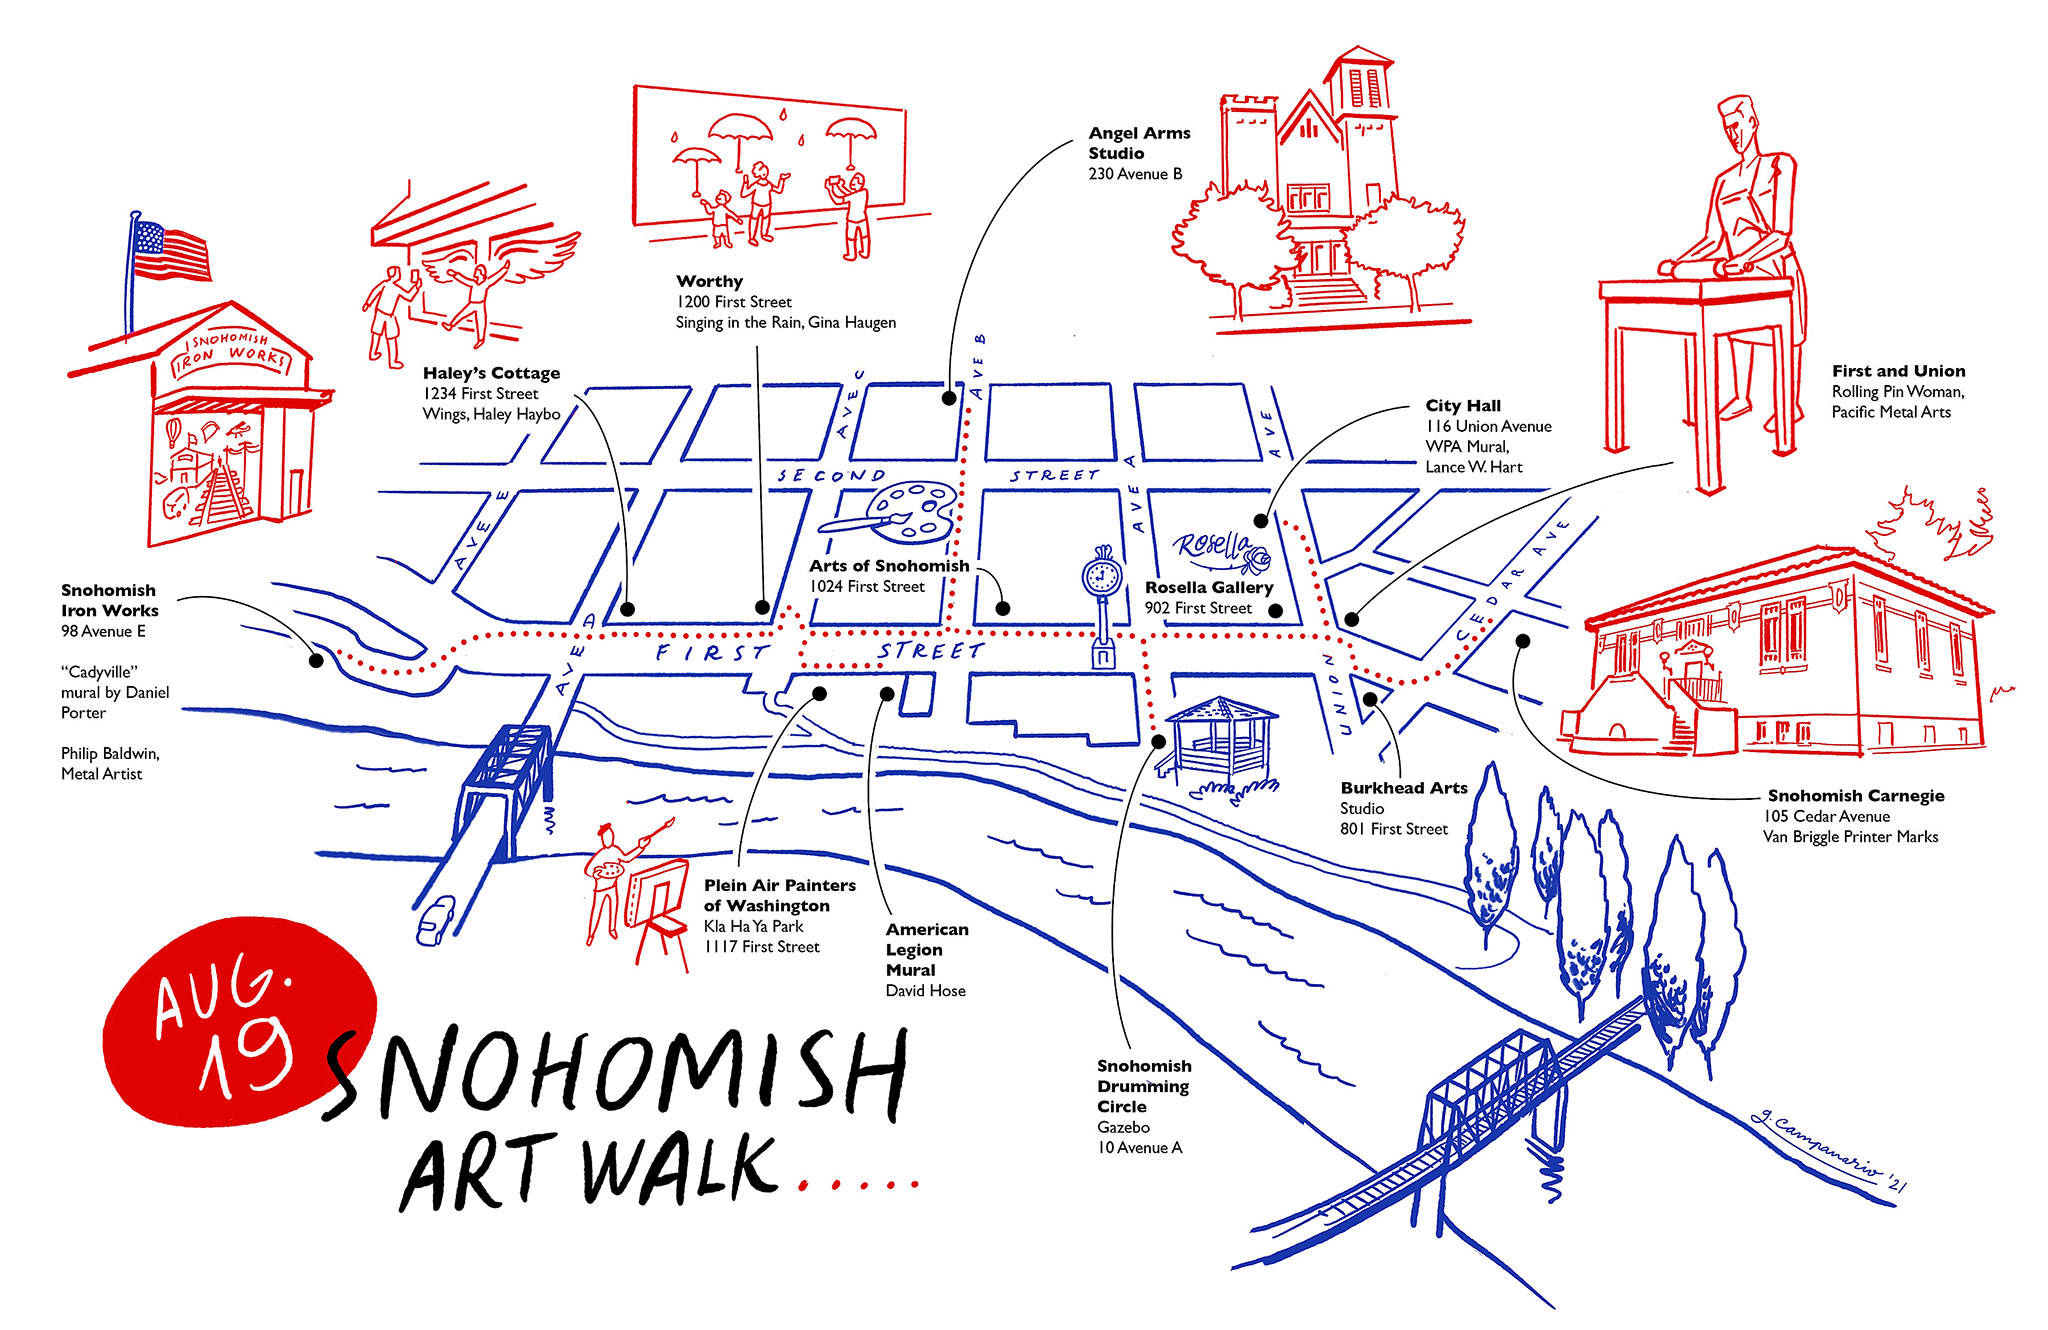 """Gabriel Campanario, who teaches at the Cloud 9 Art School in Maltby, created the Snohomish Art Walk map. His work is regularly seen in The Seattle Times. """"I was looking for a local artist who could set the tone and energy for the art walk. I think he nailed it,"""" art walk organizer Wendy Poischbeg said. (Gabriel Campanario)"""